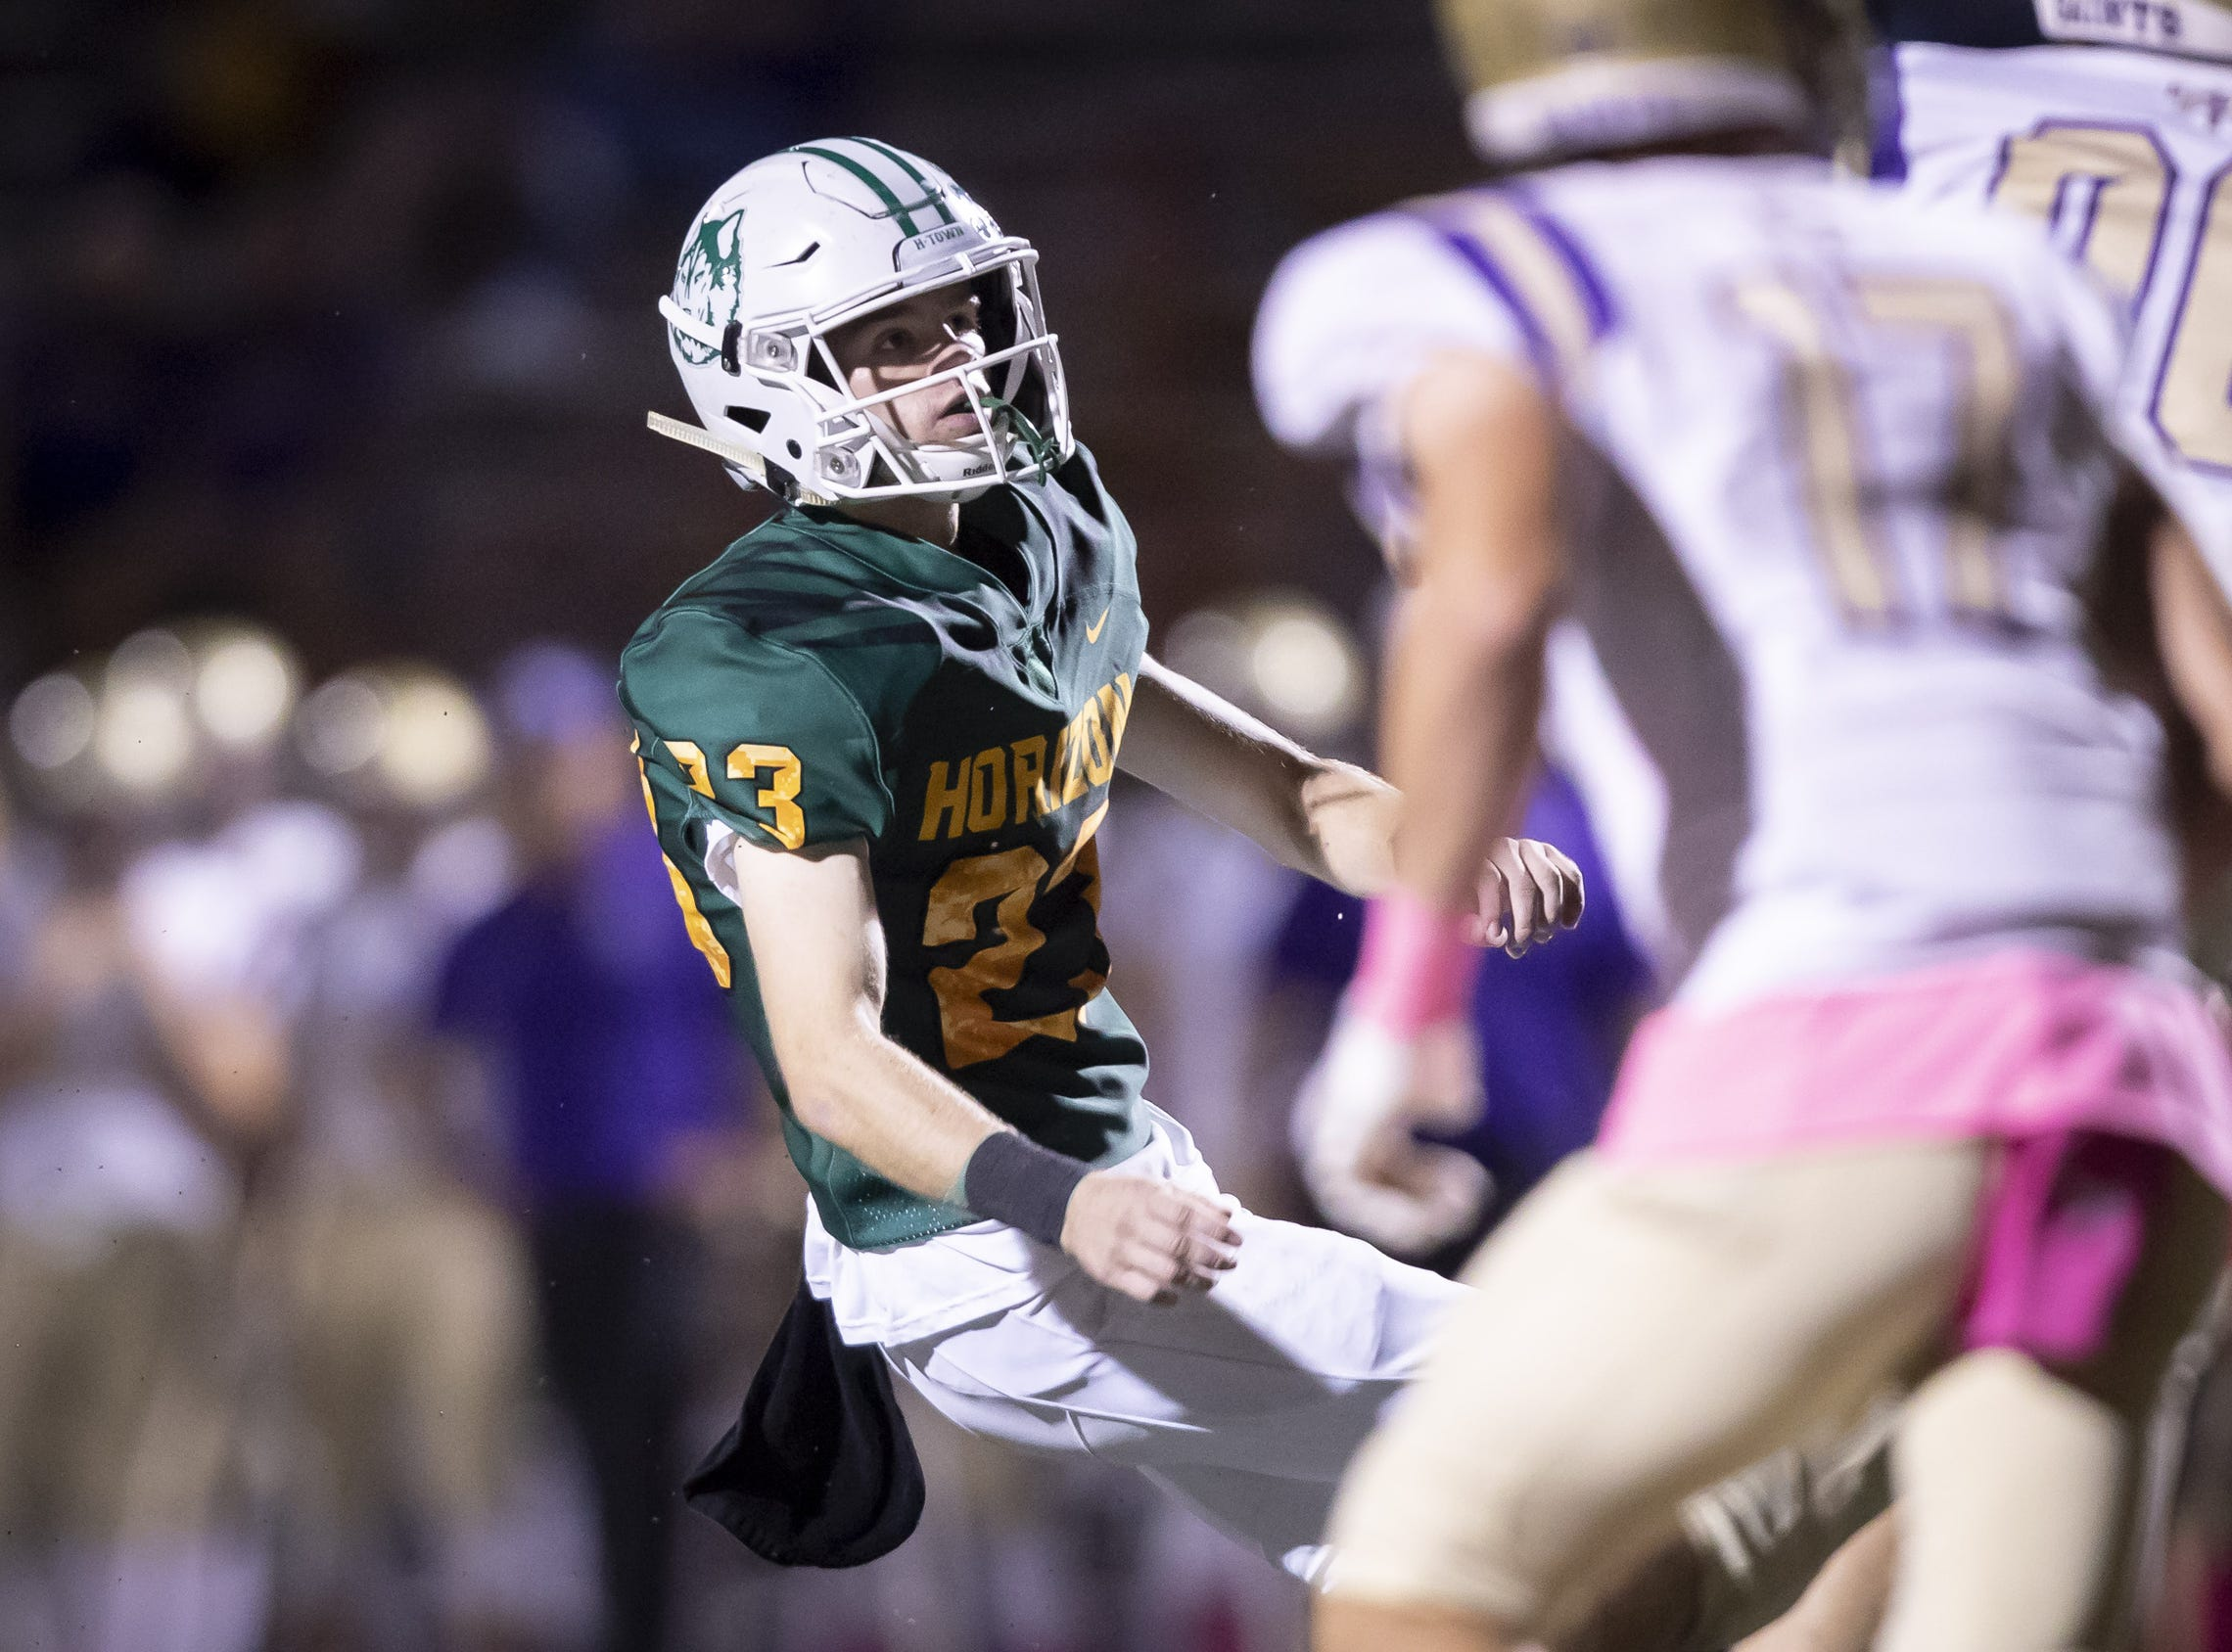 Senior kicker Cole Johnson (23) of the Horizon Huskies kicks an extra point during the game against the Notre Dame Prep Saints at Horizon High School on Friday, October 5, 2018 in Scottsdale, Arizona. #azhsfb